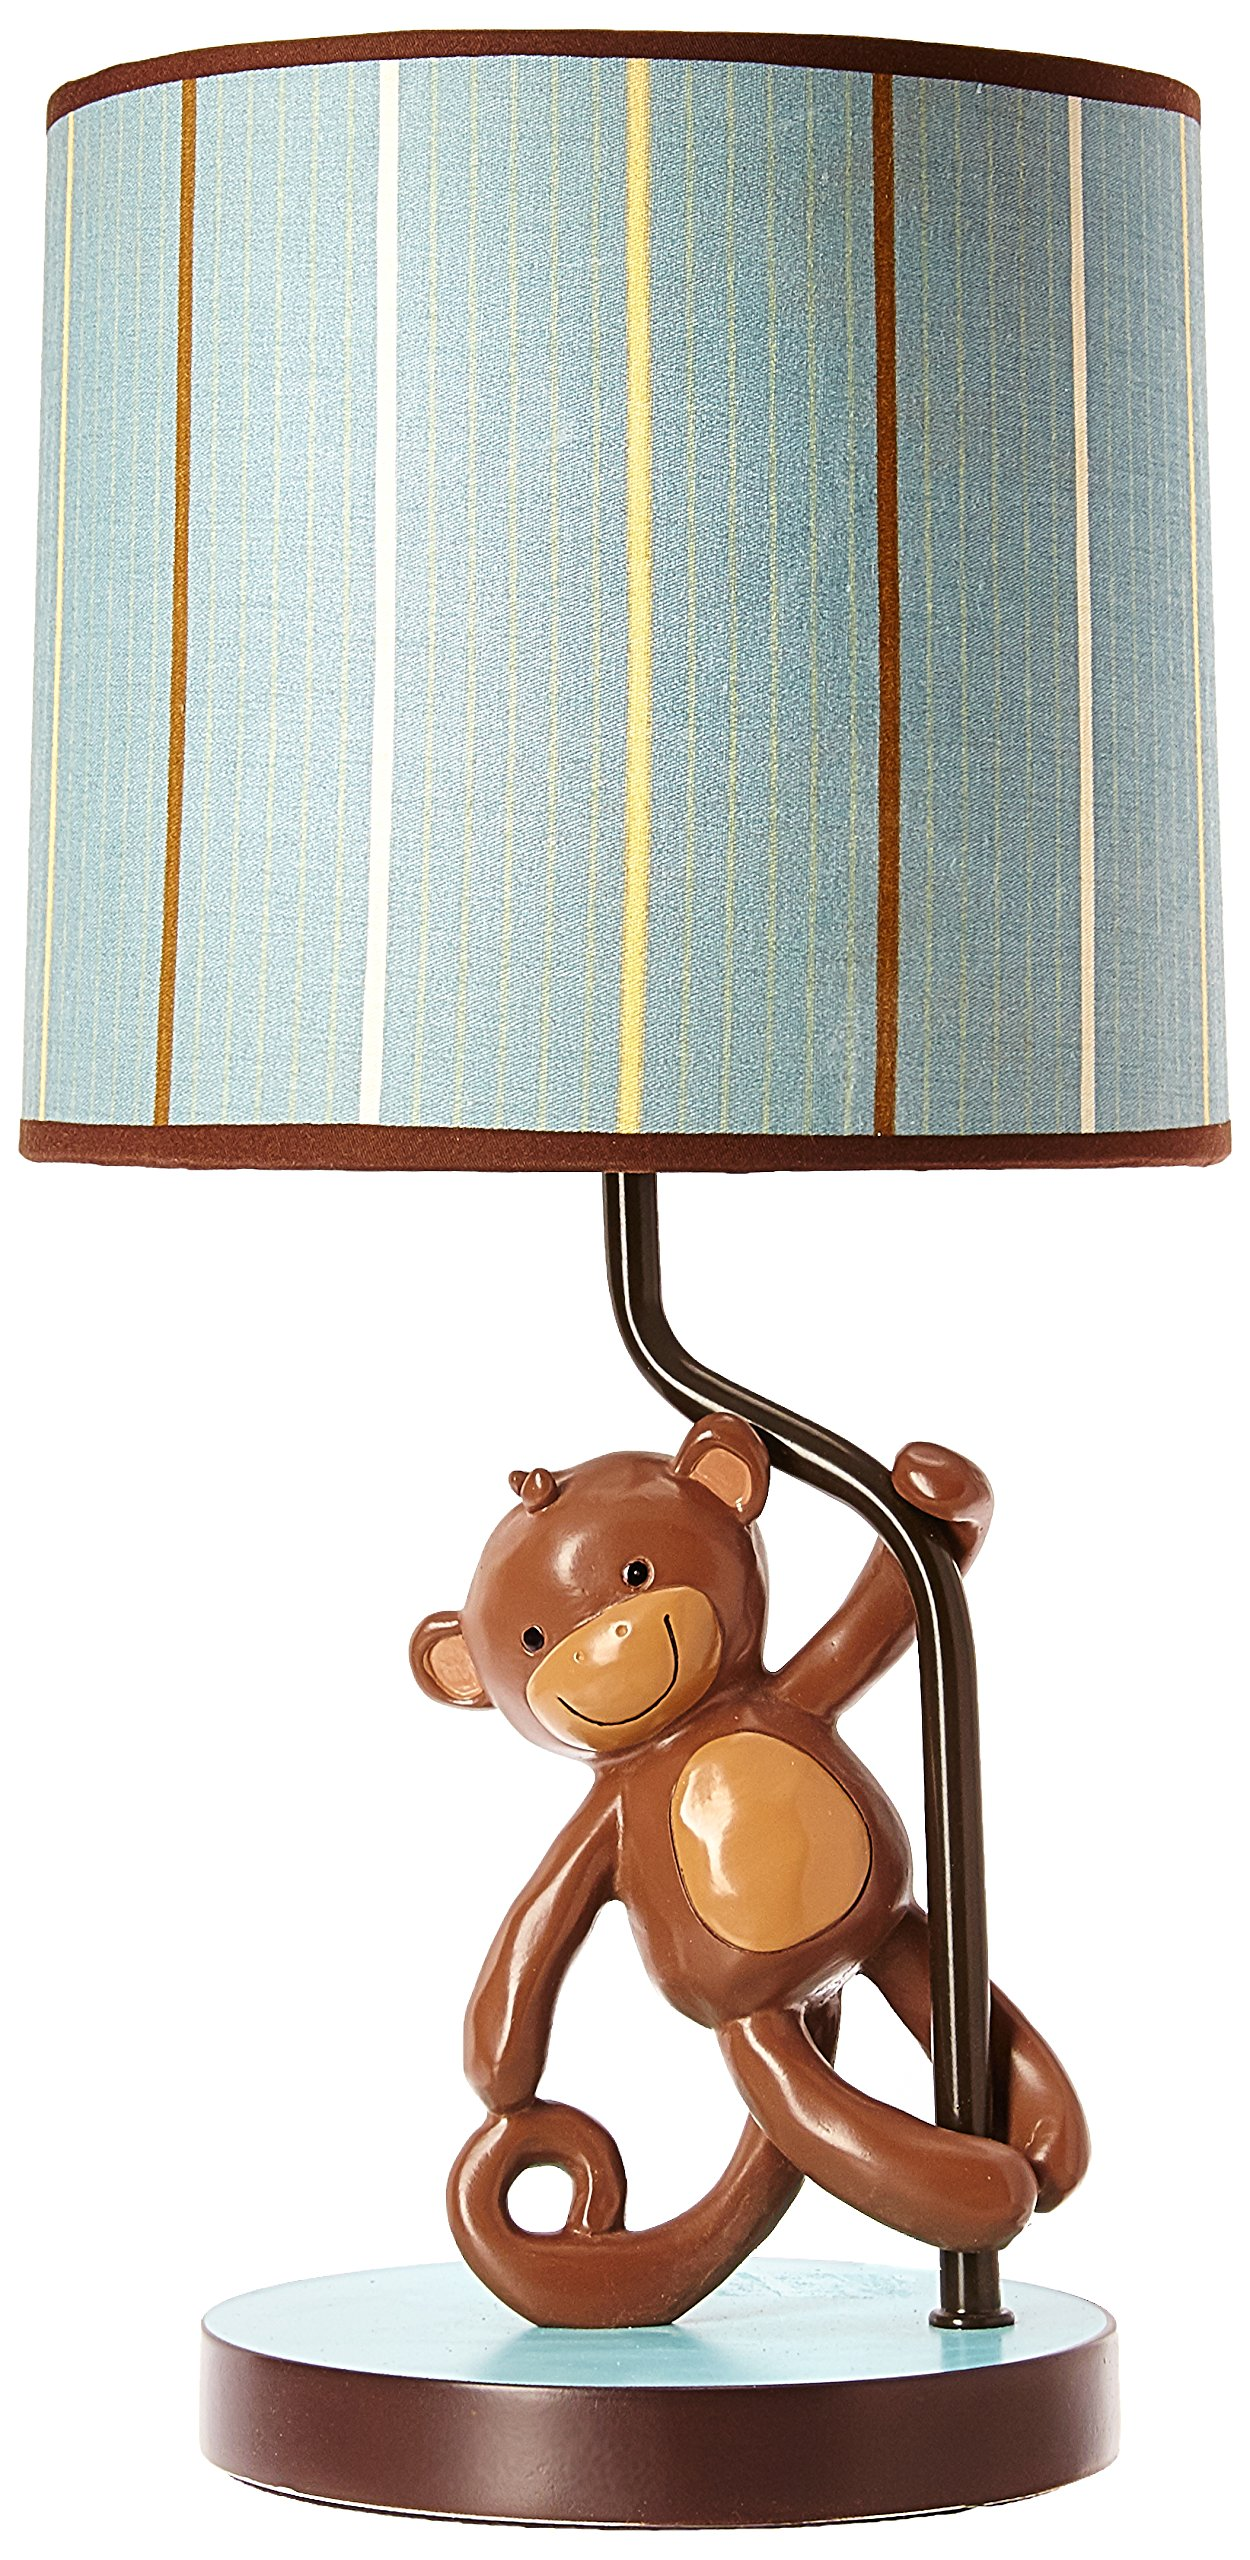 Lambs & Ivy Lamp with Shade and Bulb, Giggles